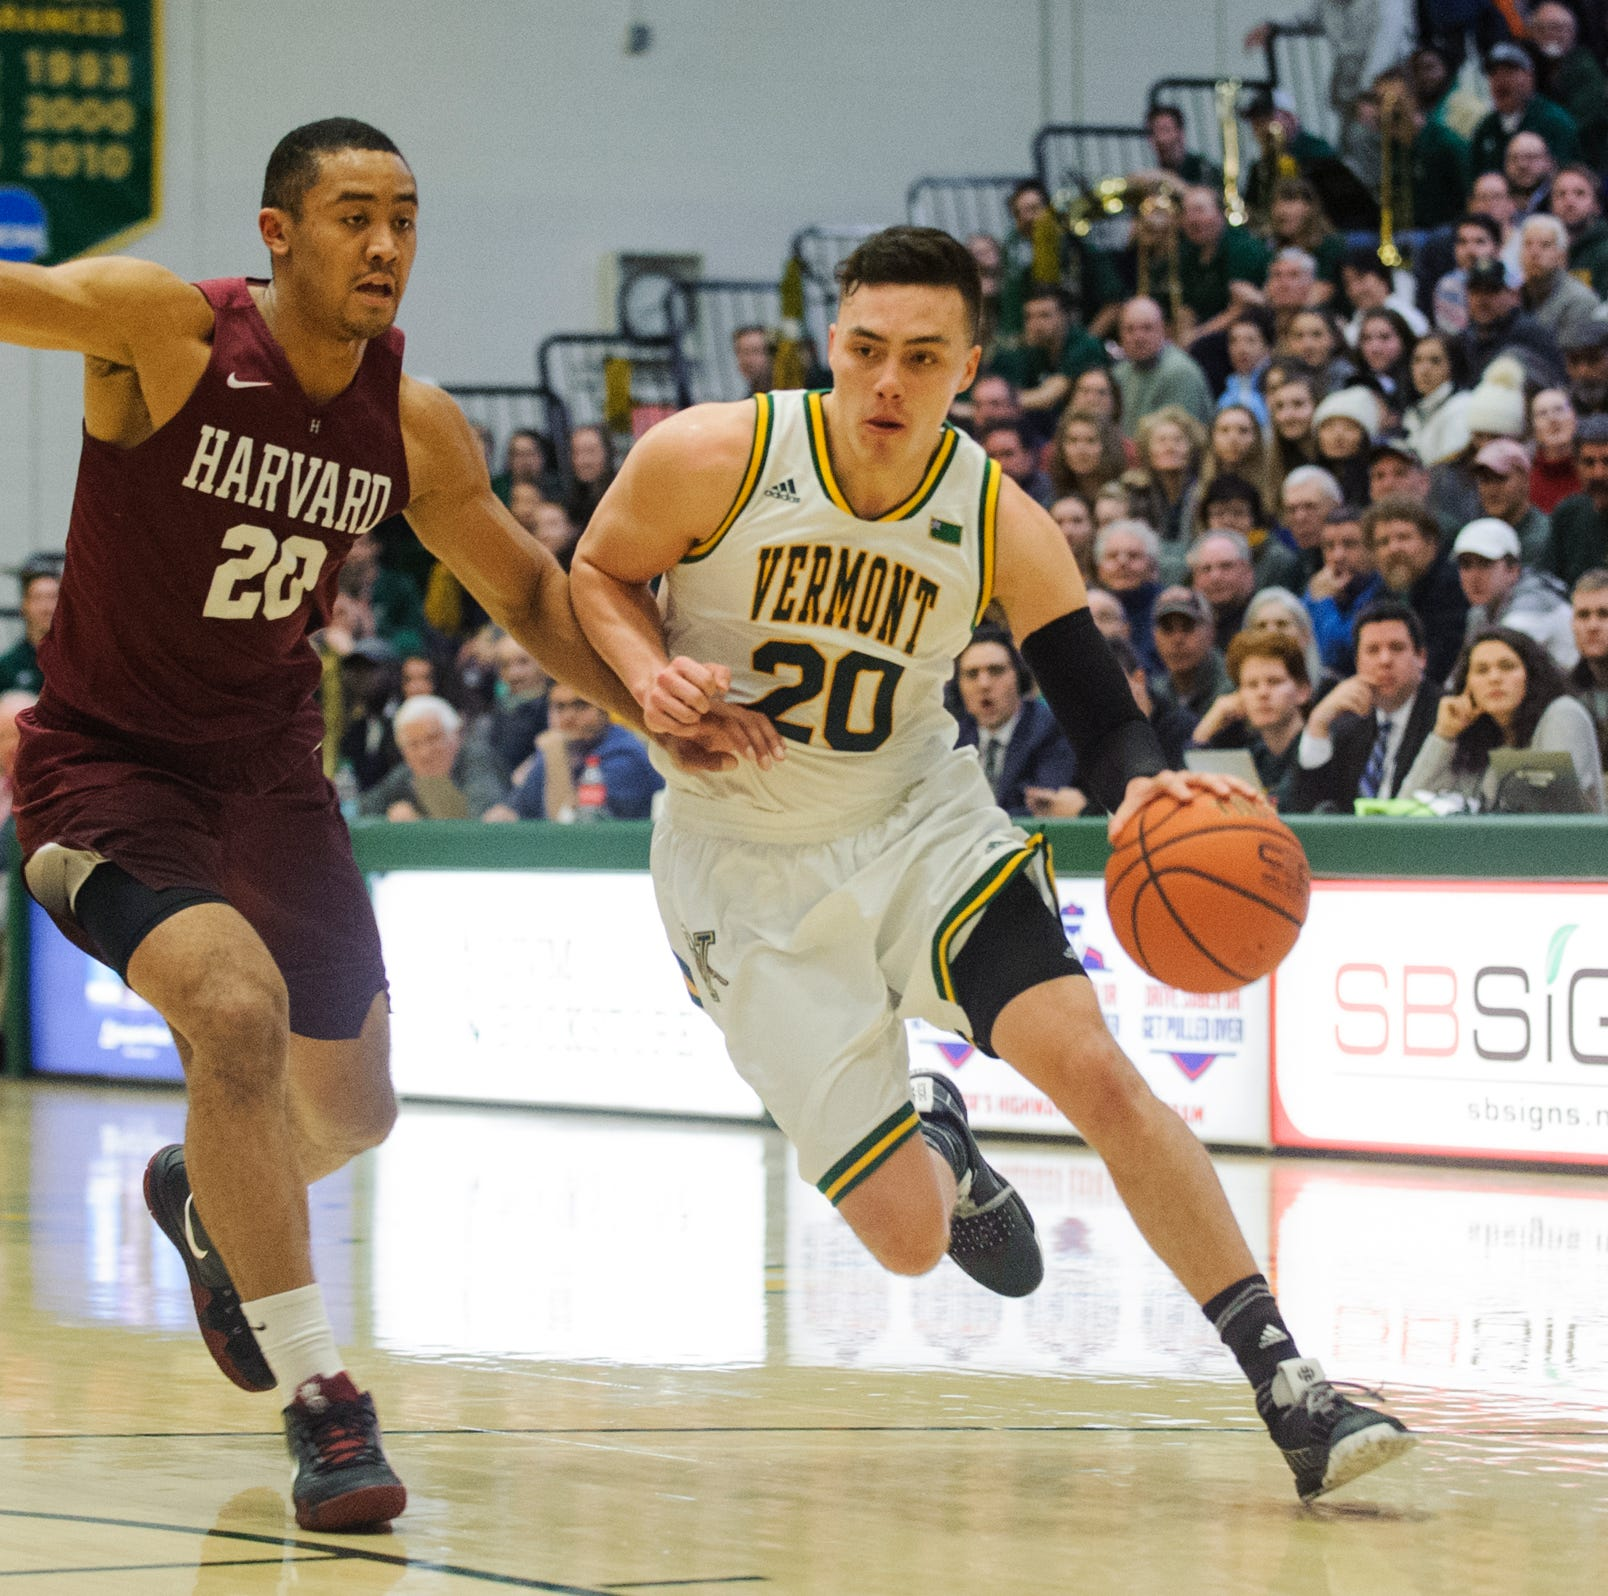 UVM men's basketball seeks to end skid vs. Northeastern